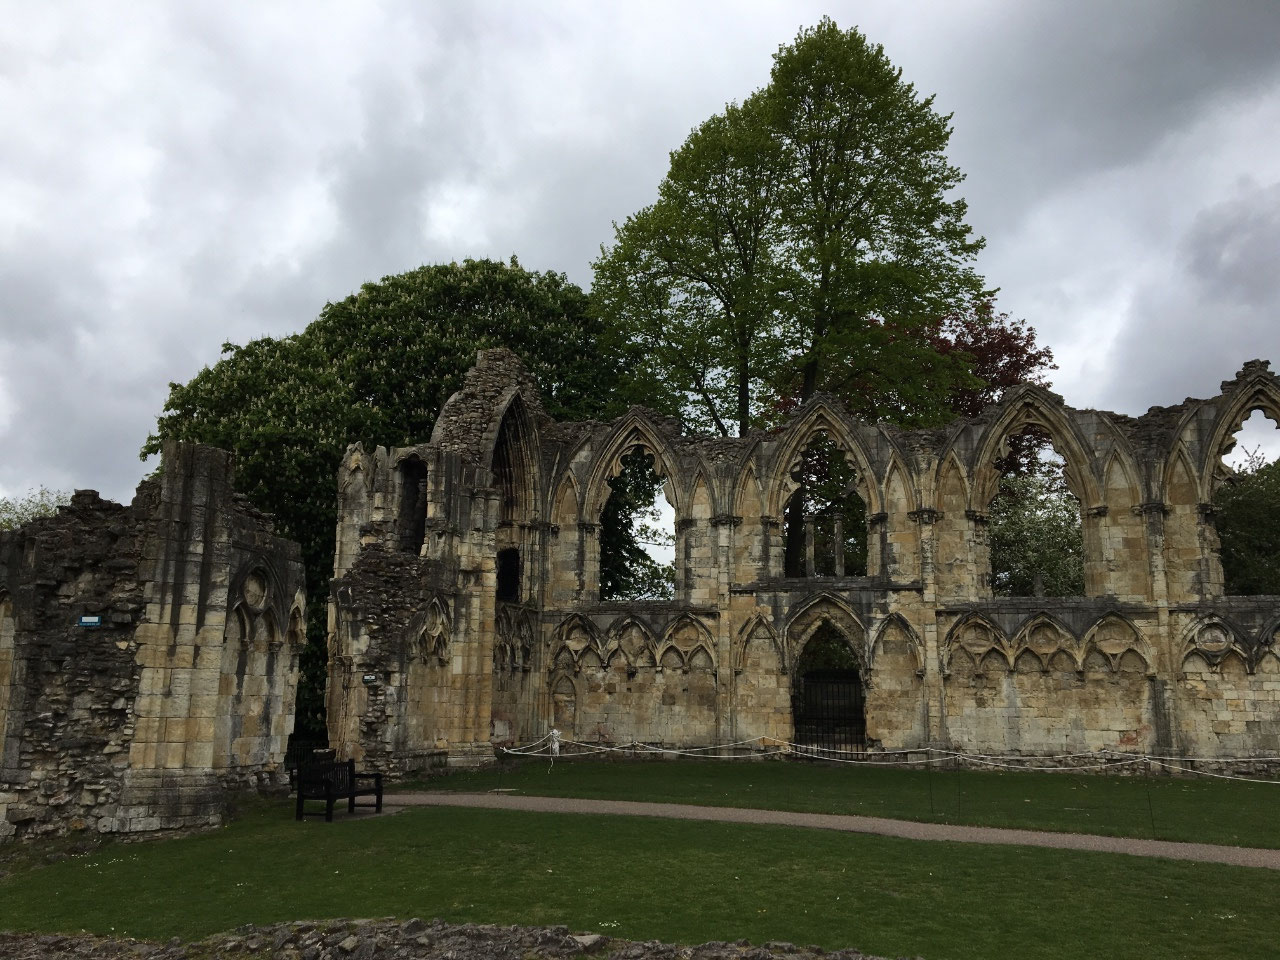 Ruins of St Mary's Abbey